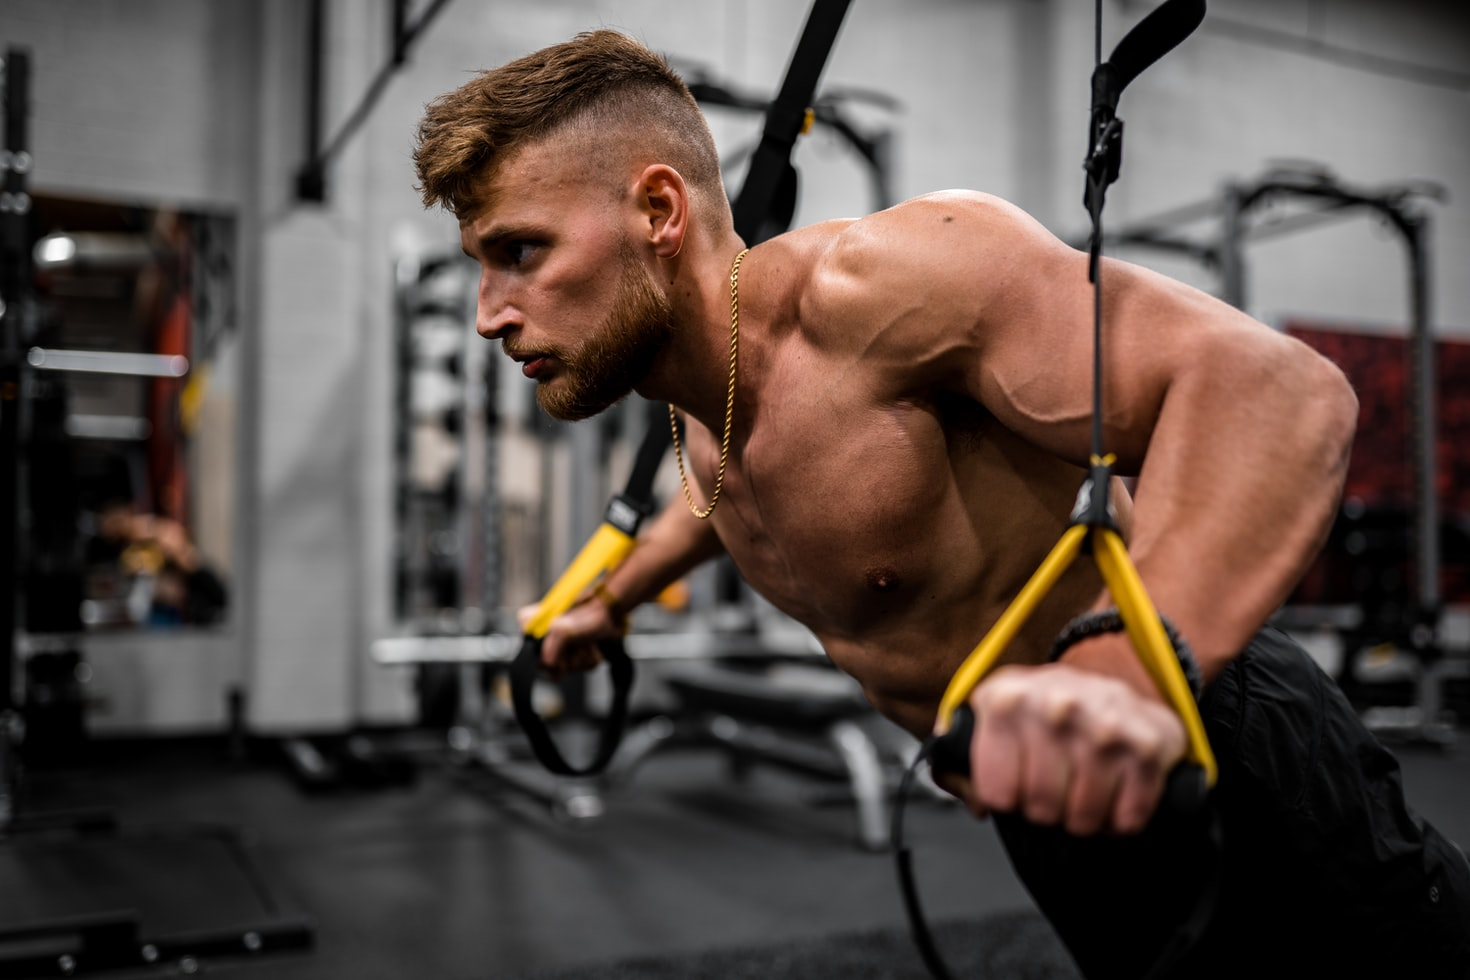 Repetitions in reserve (RIR) simply states how many more reps you could have done. You can use Everfit to create a online personal periodization training, applying RIR